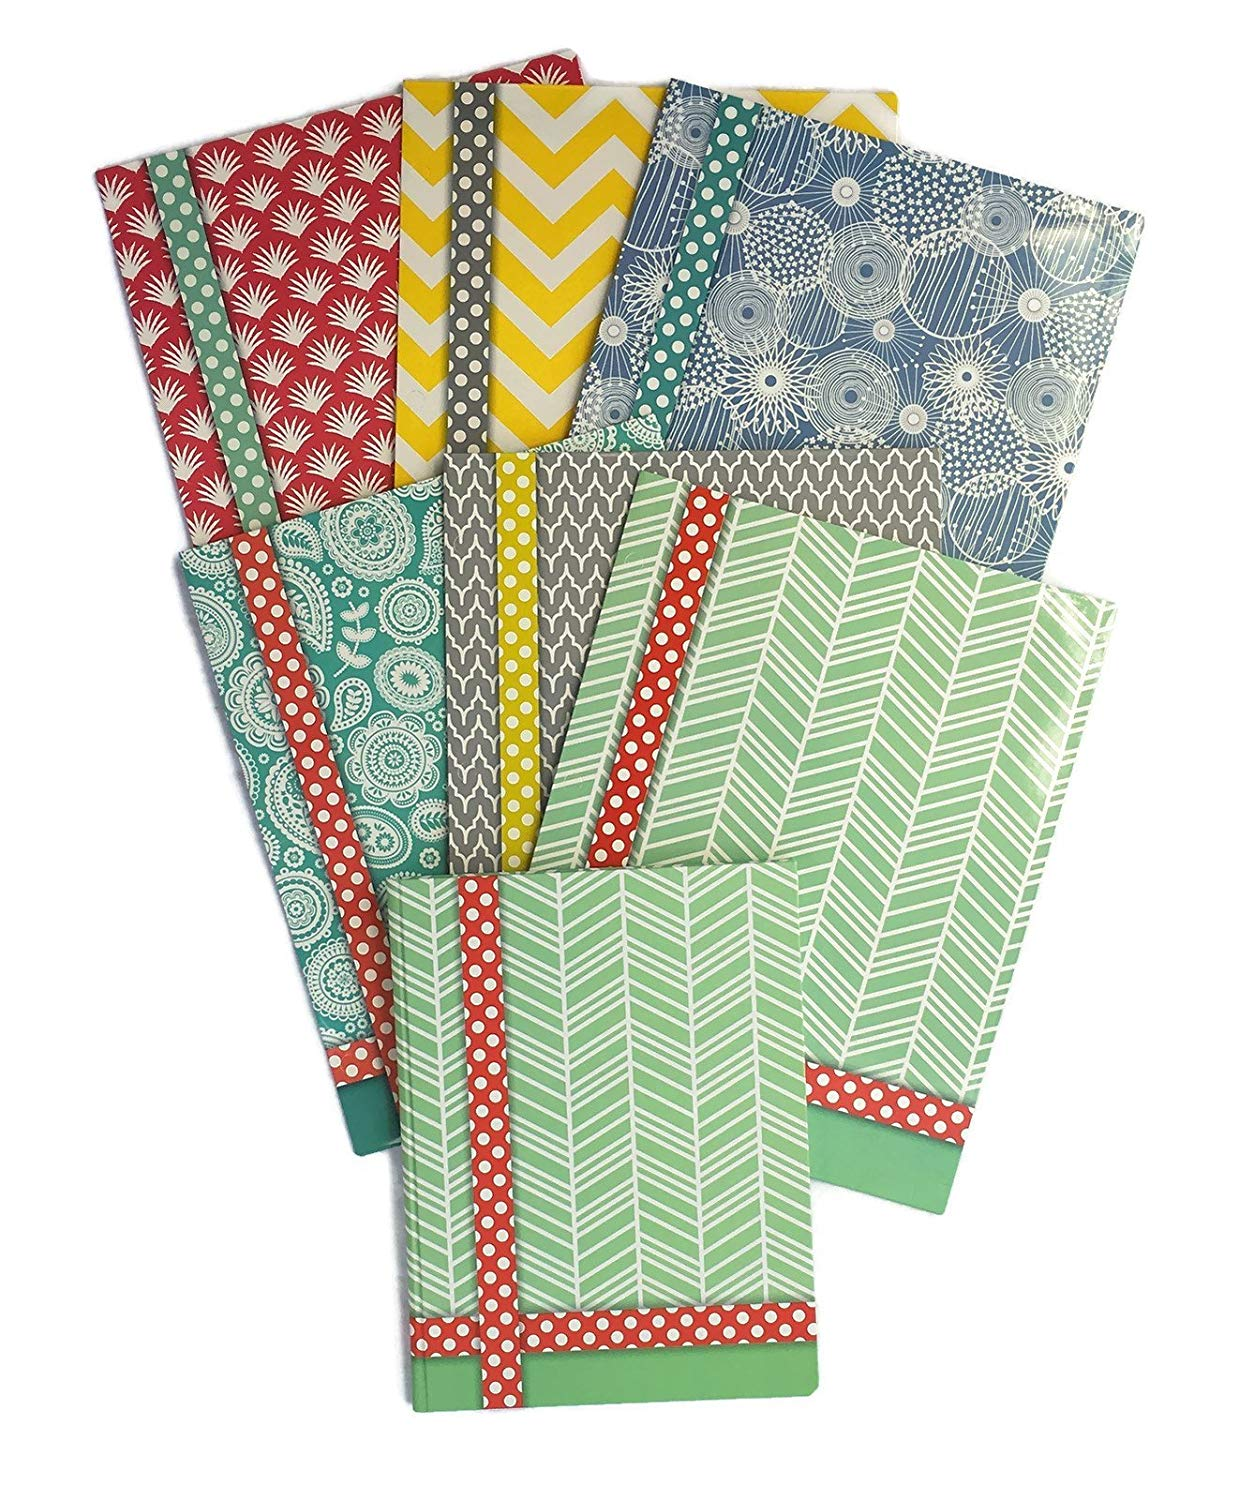 Colorful Pattern Design Belle School Supply Bundle: 7 Items: Seven Assorted Belle School Subject Folders, Plus One Matching Hardcover College Ruled Composition Notebook (Green Notebook)